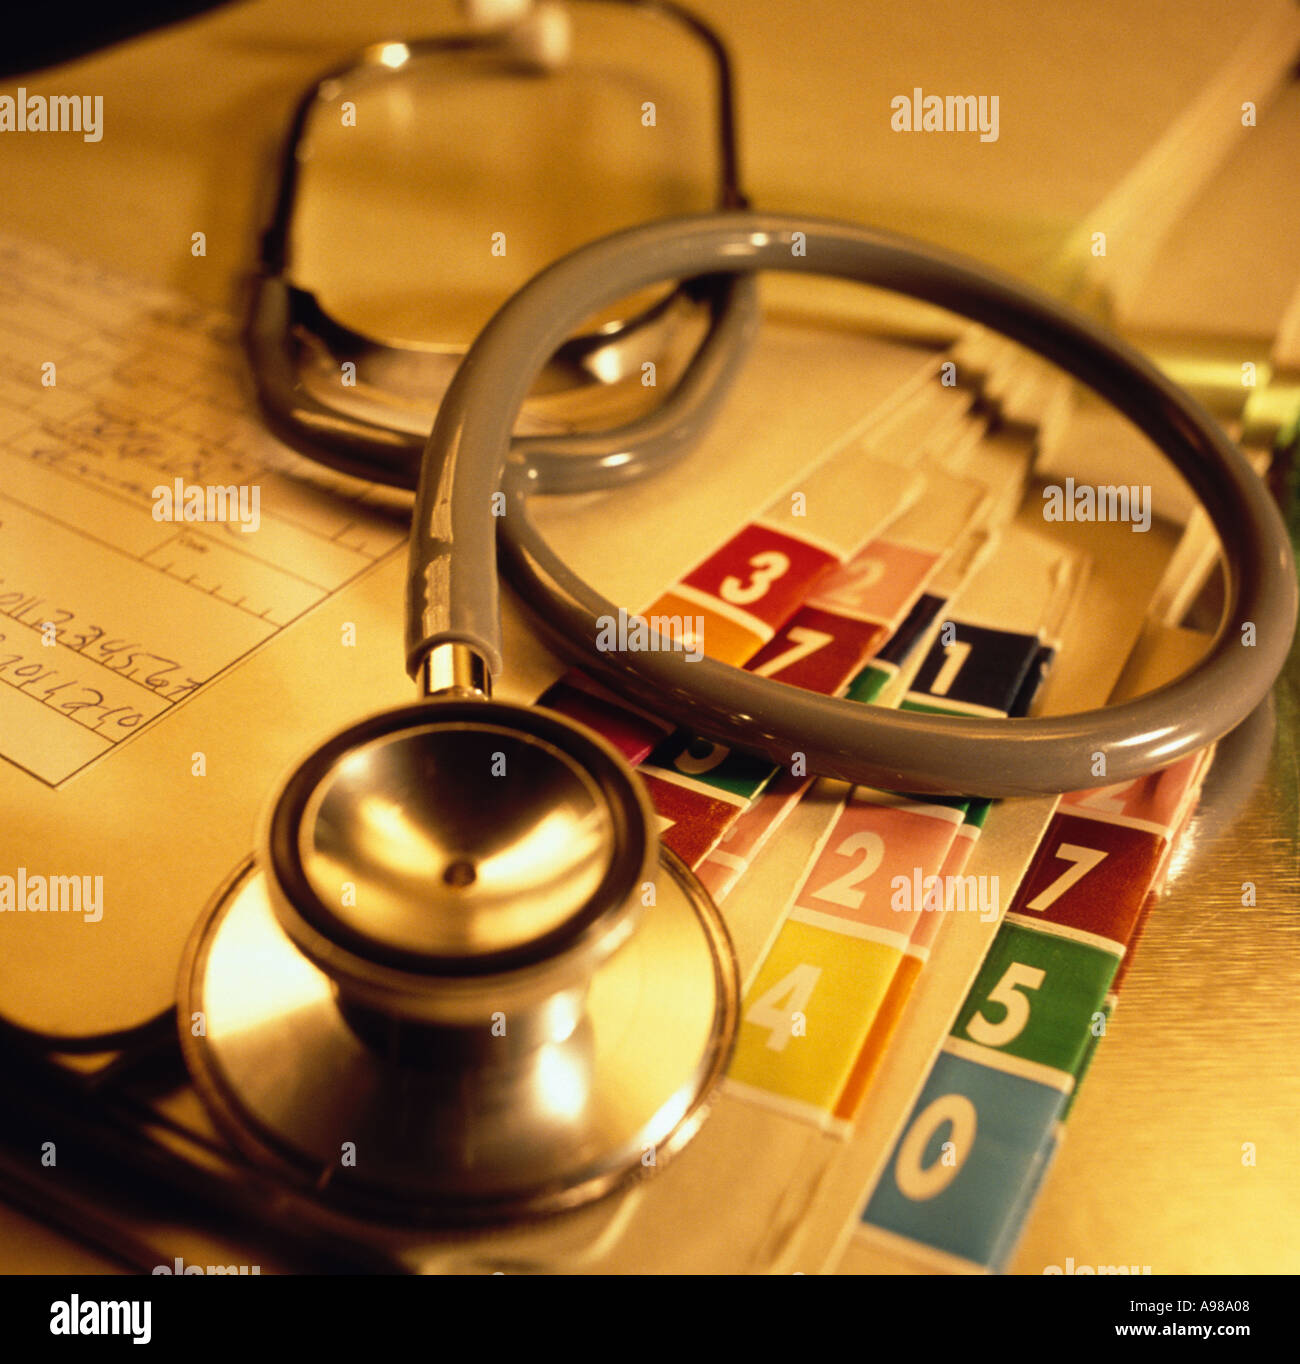 A Doctor Stethescope Laying On A Pile Of Patient Medical Charts